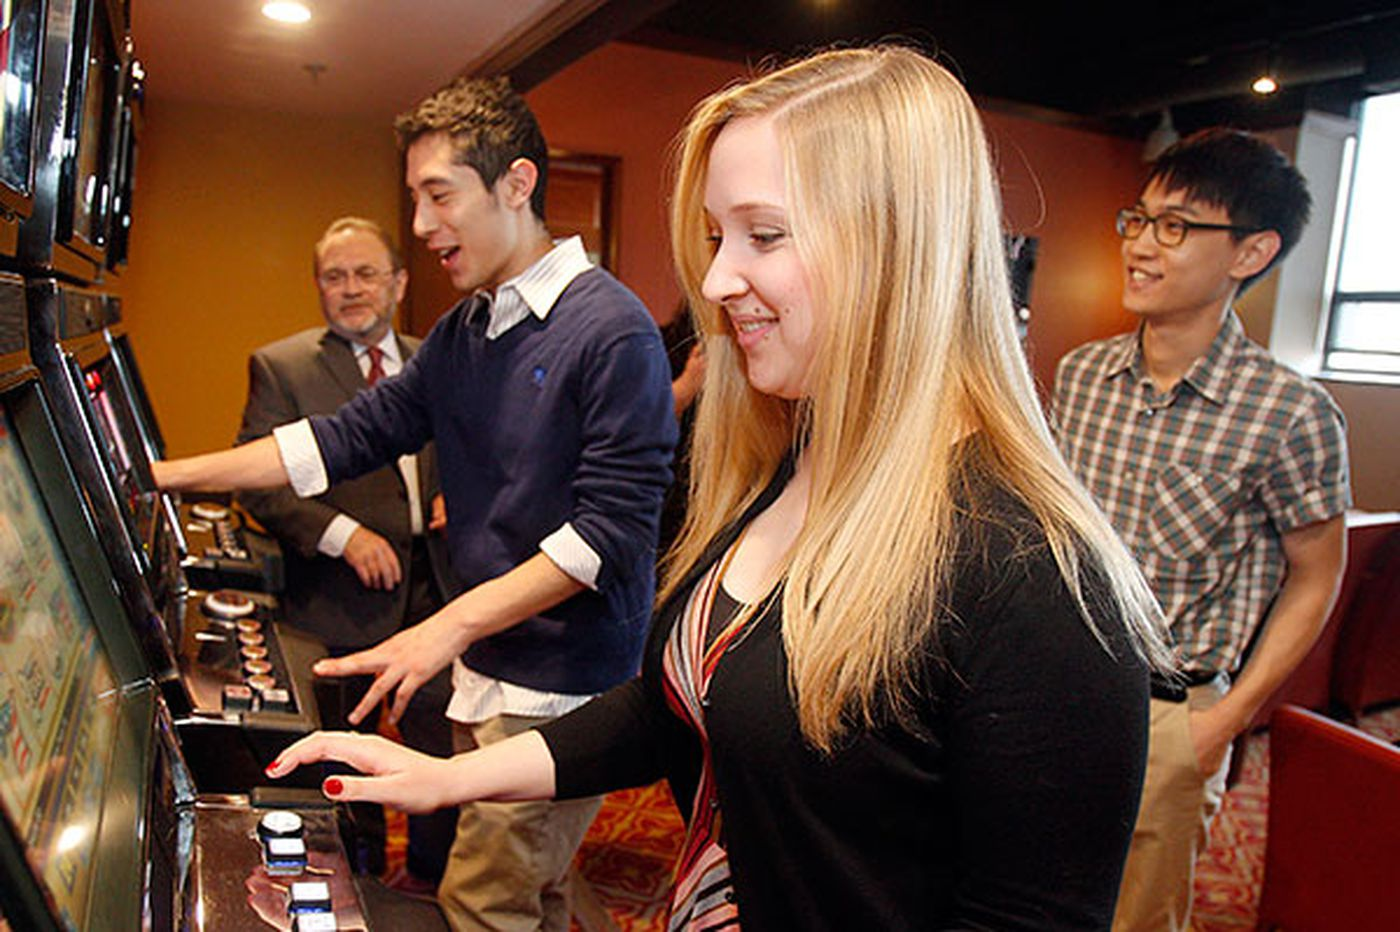 The slots come to Drexel - to teach